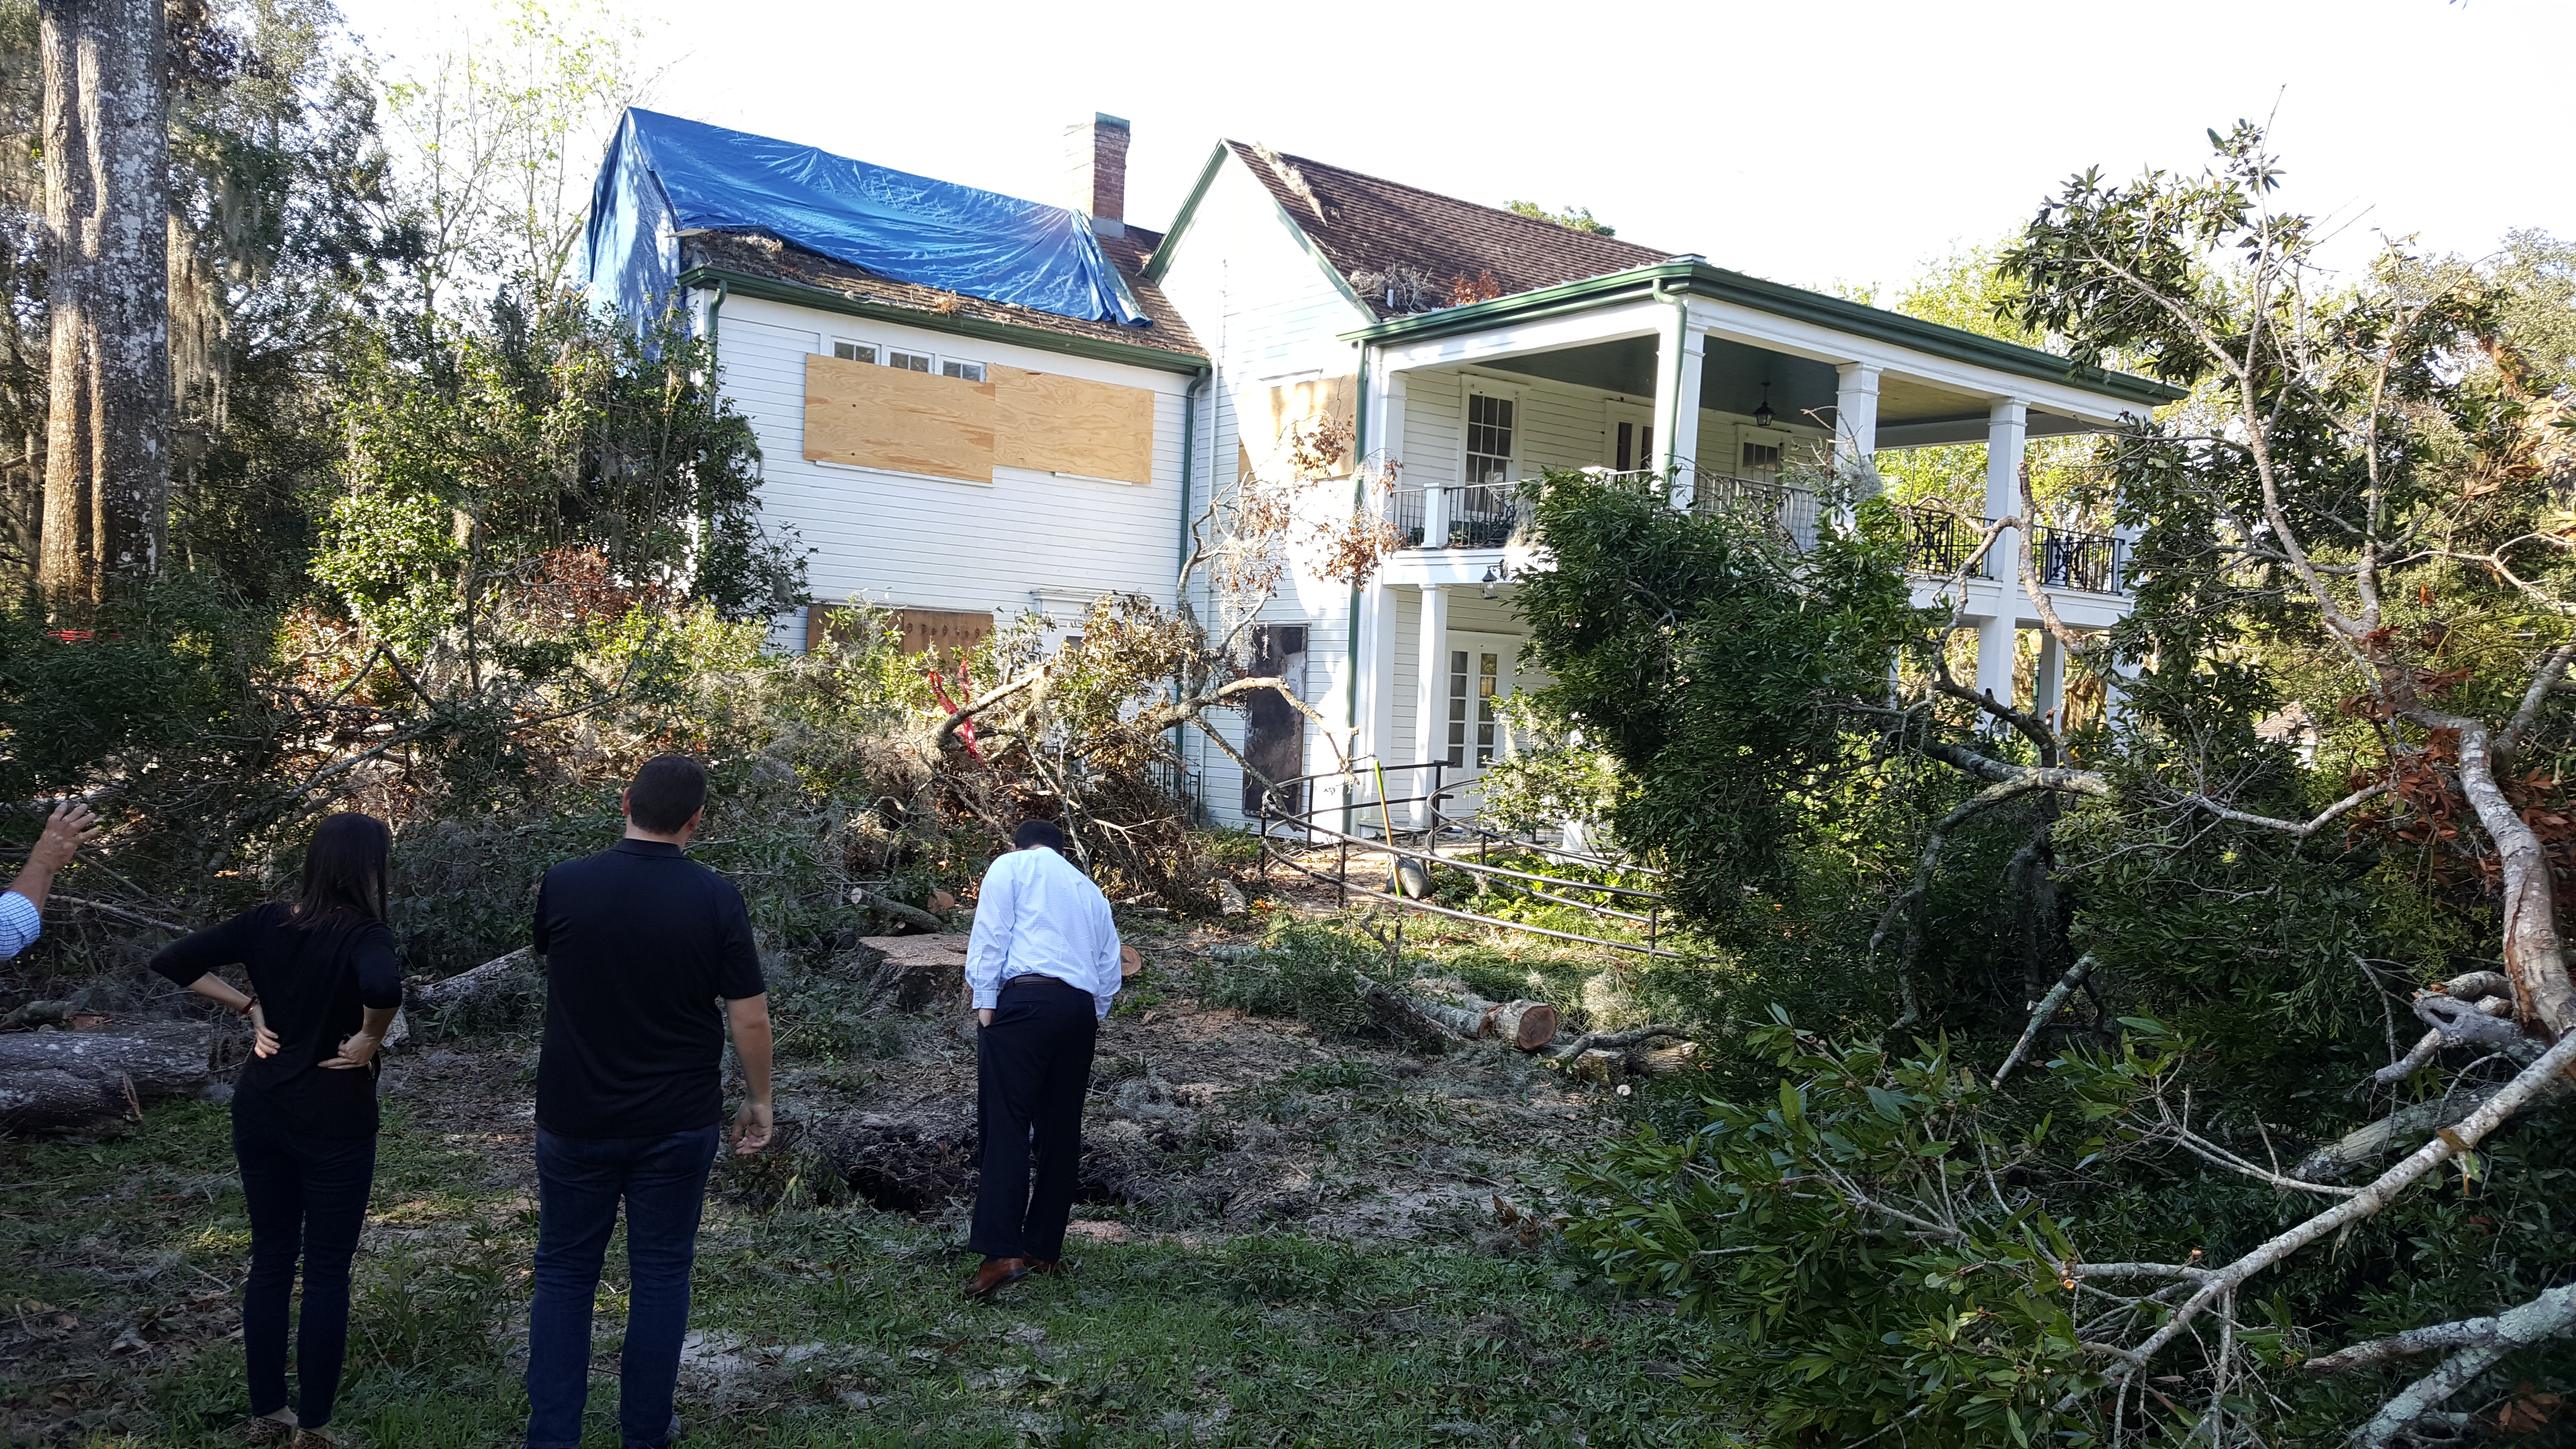 leu gardens hurricane cleanup well under way but could take